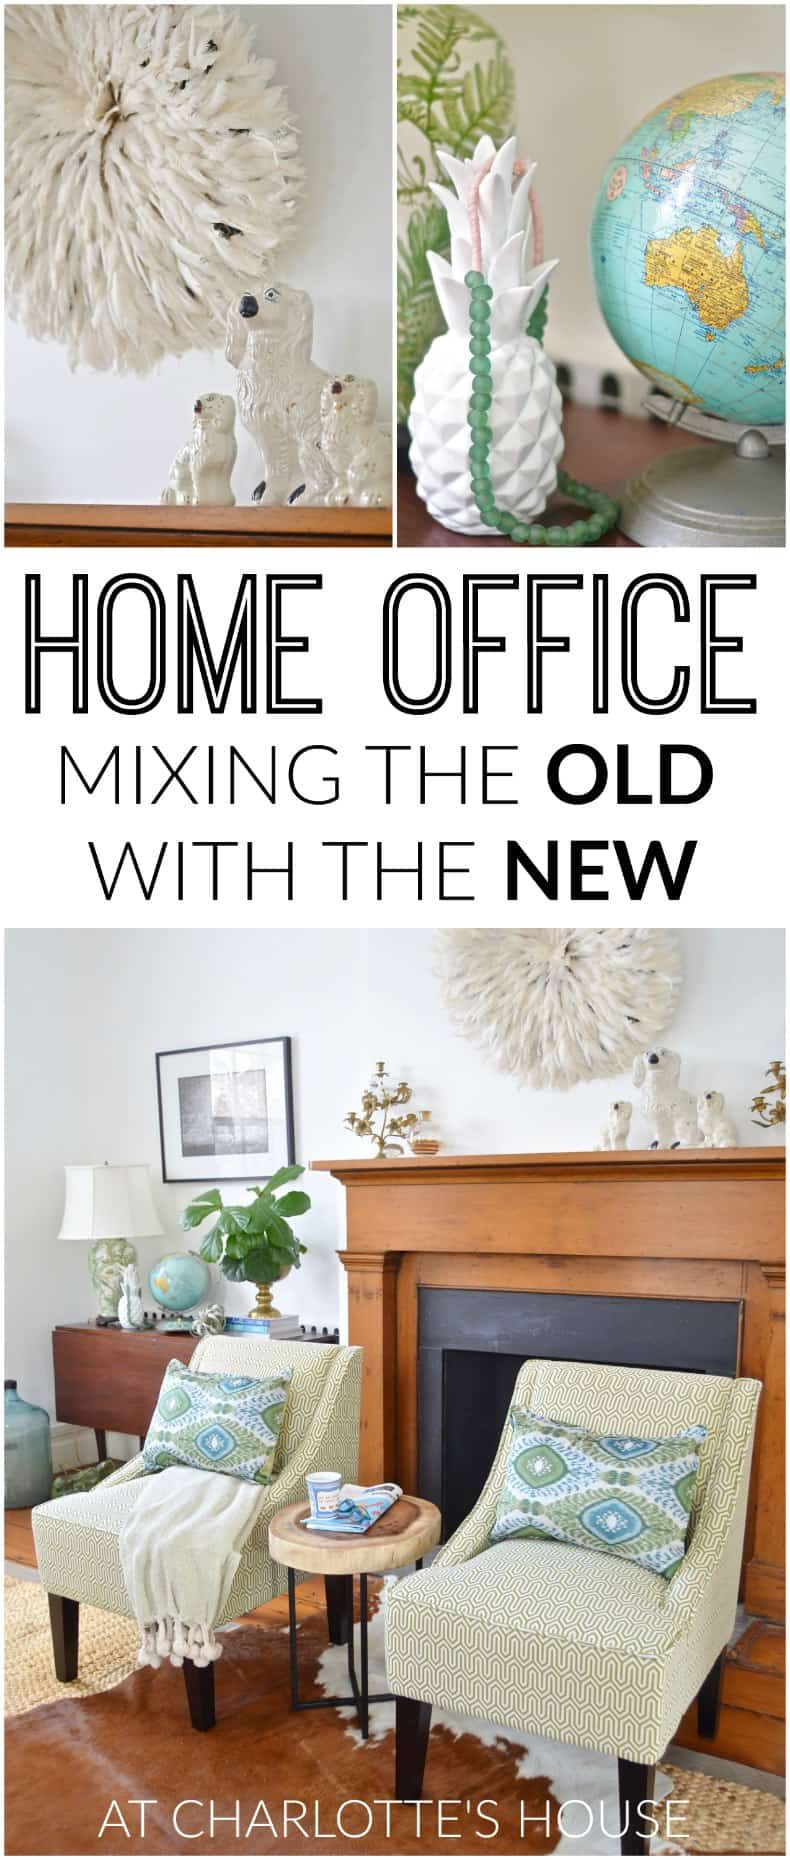 Elegant Mixing The Old With The New In Our Home Office! #ad #KohlsHome And